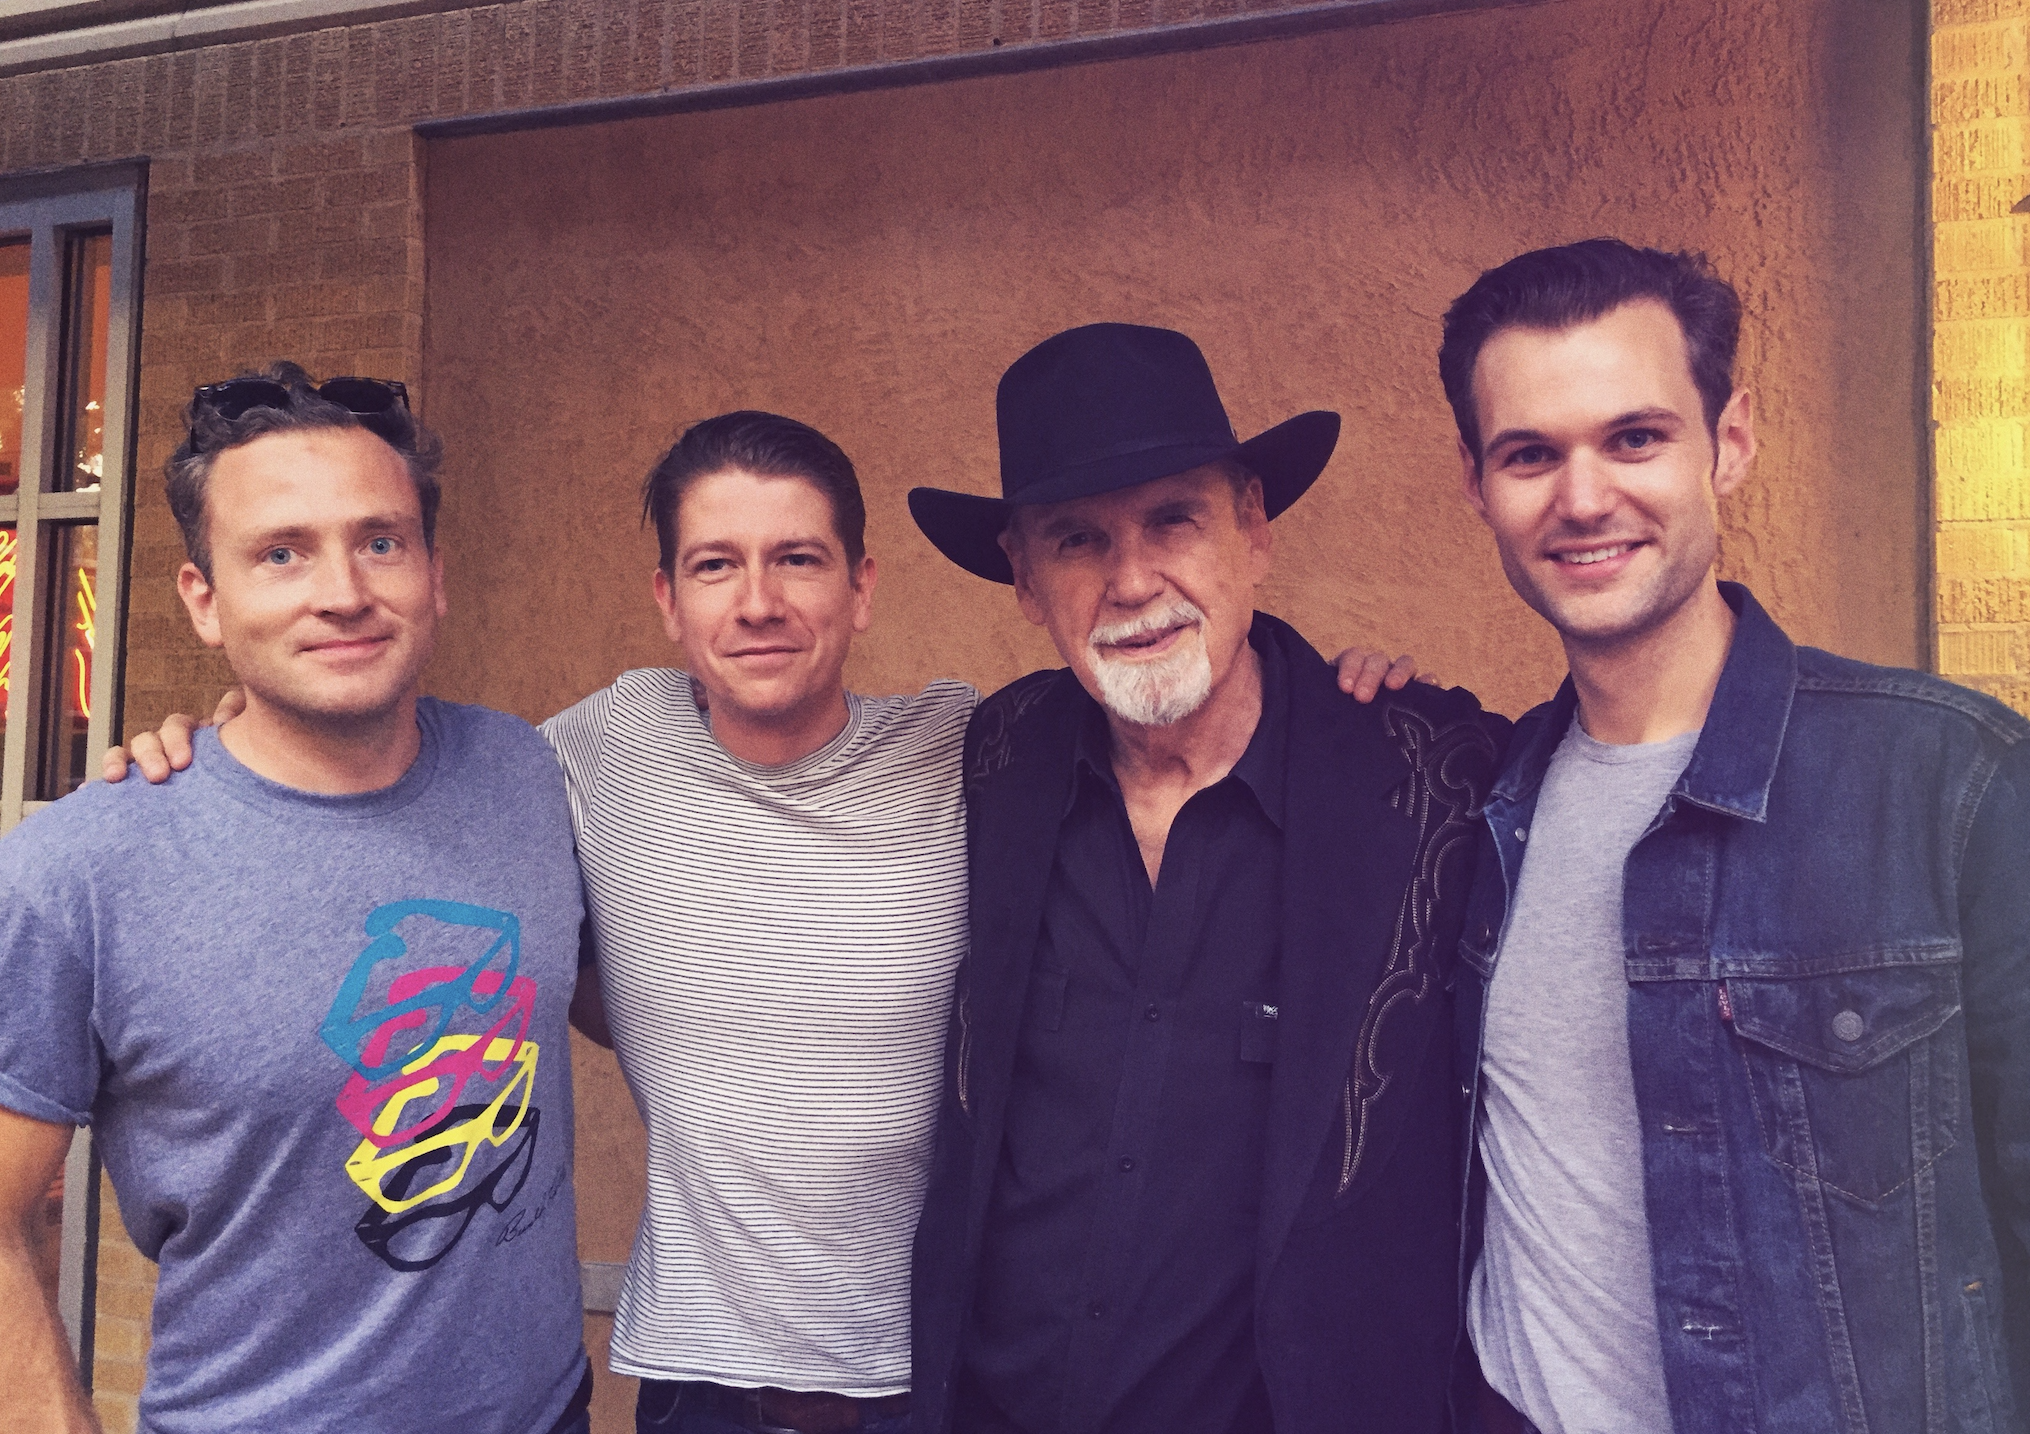 The Bluejays with Duane Eddy at the Buddy Holly Center, Lubbock Texas.